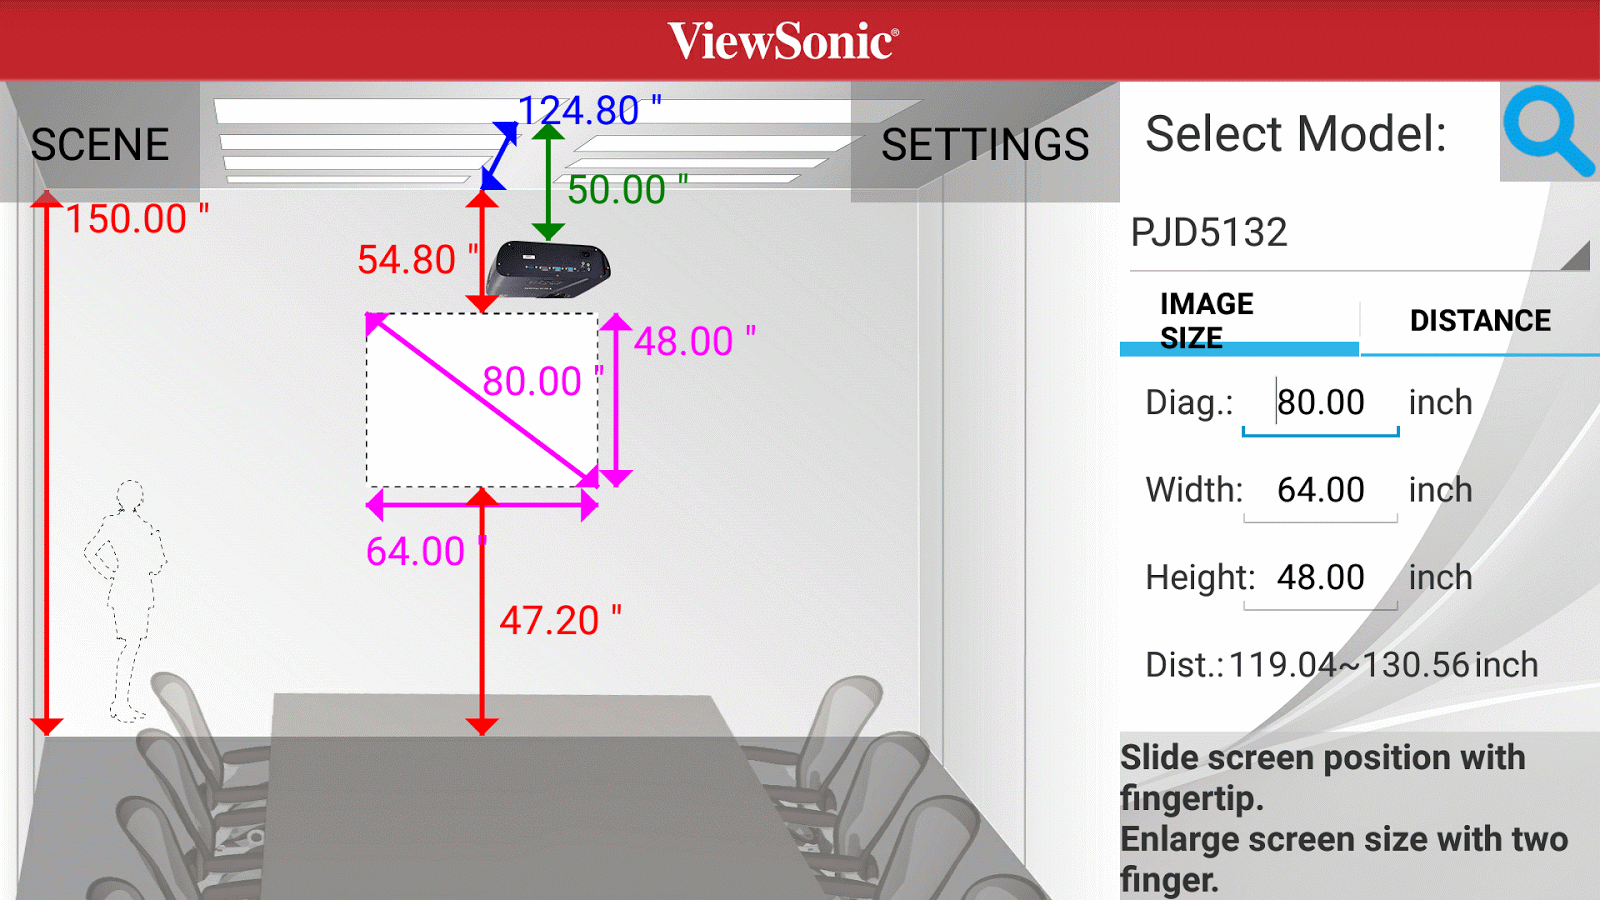 Viewsonic Projector Distance Android Apps On Google Play